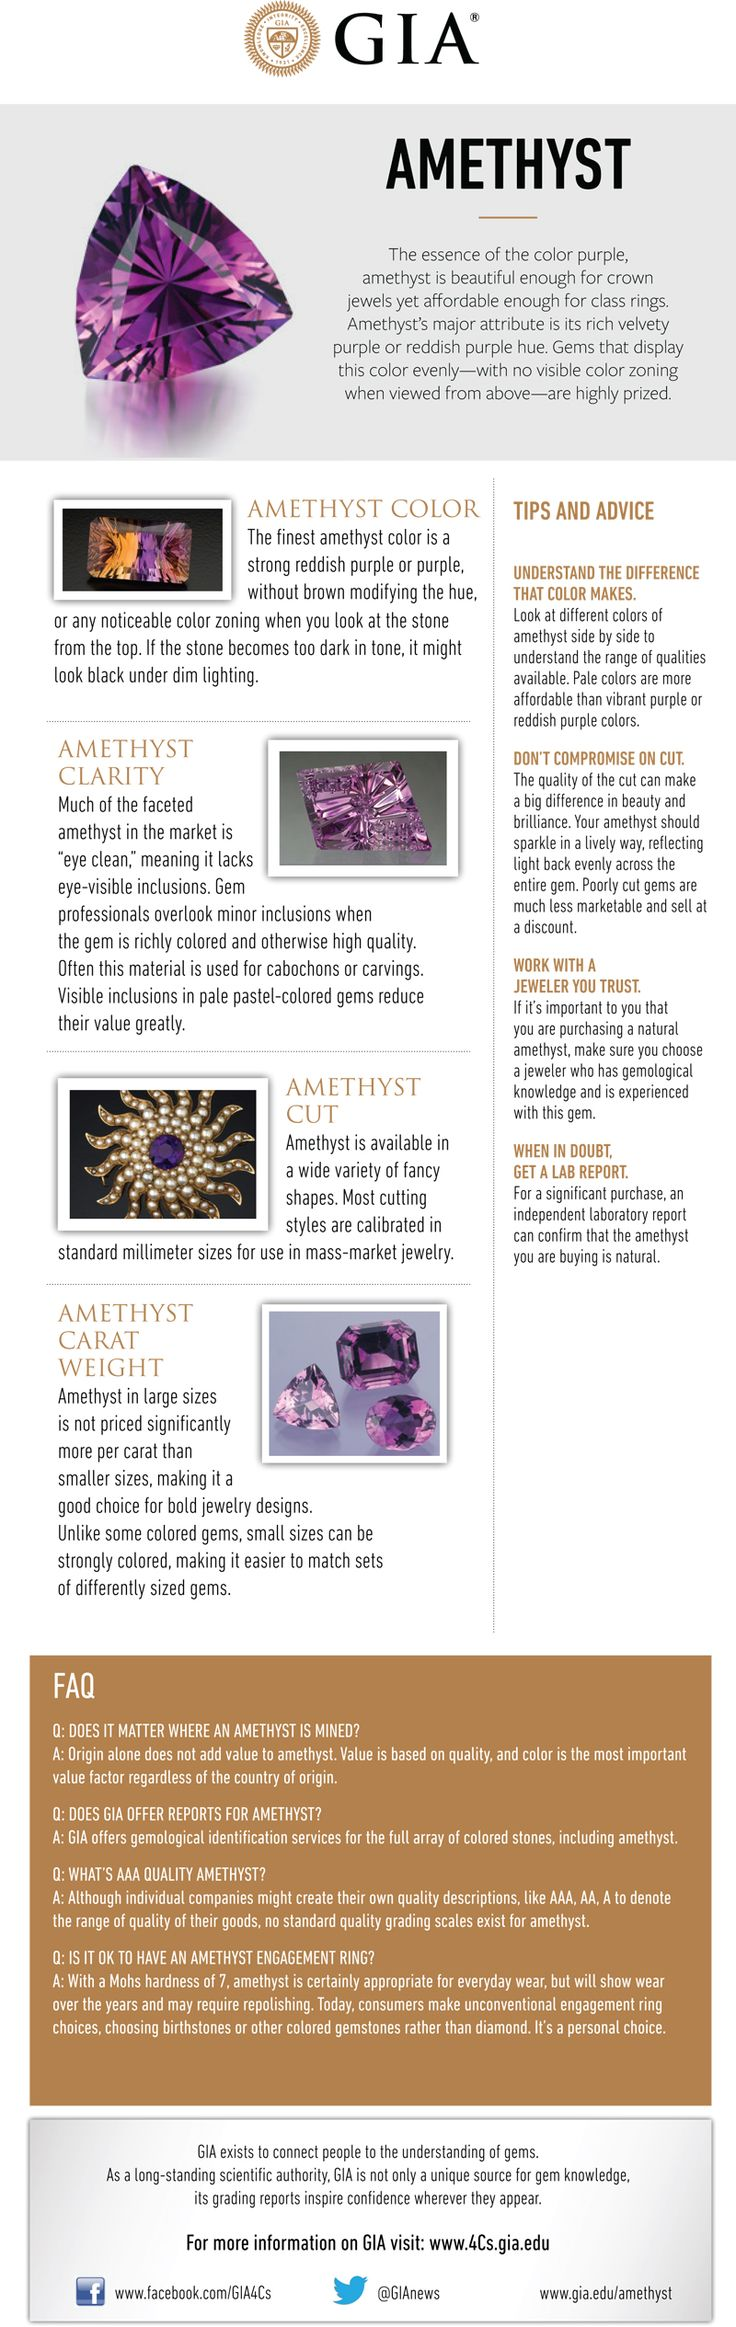 Amethyst buying guide. GIA (020314)